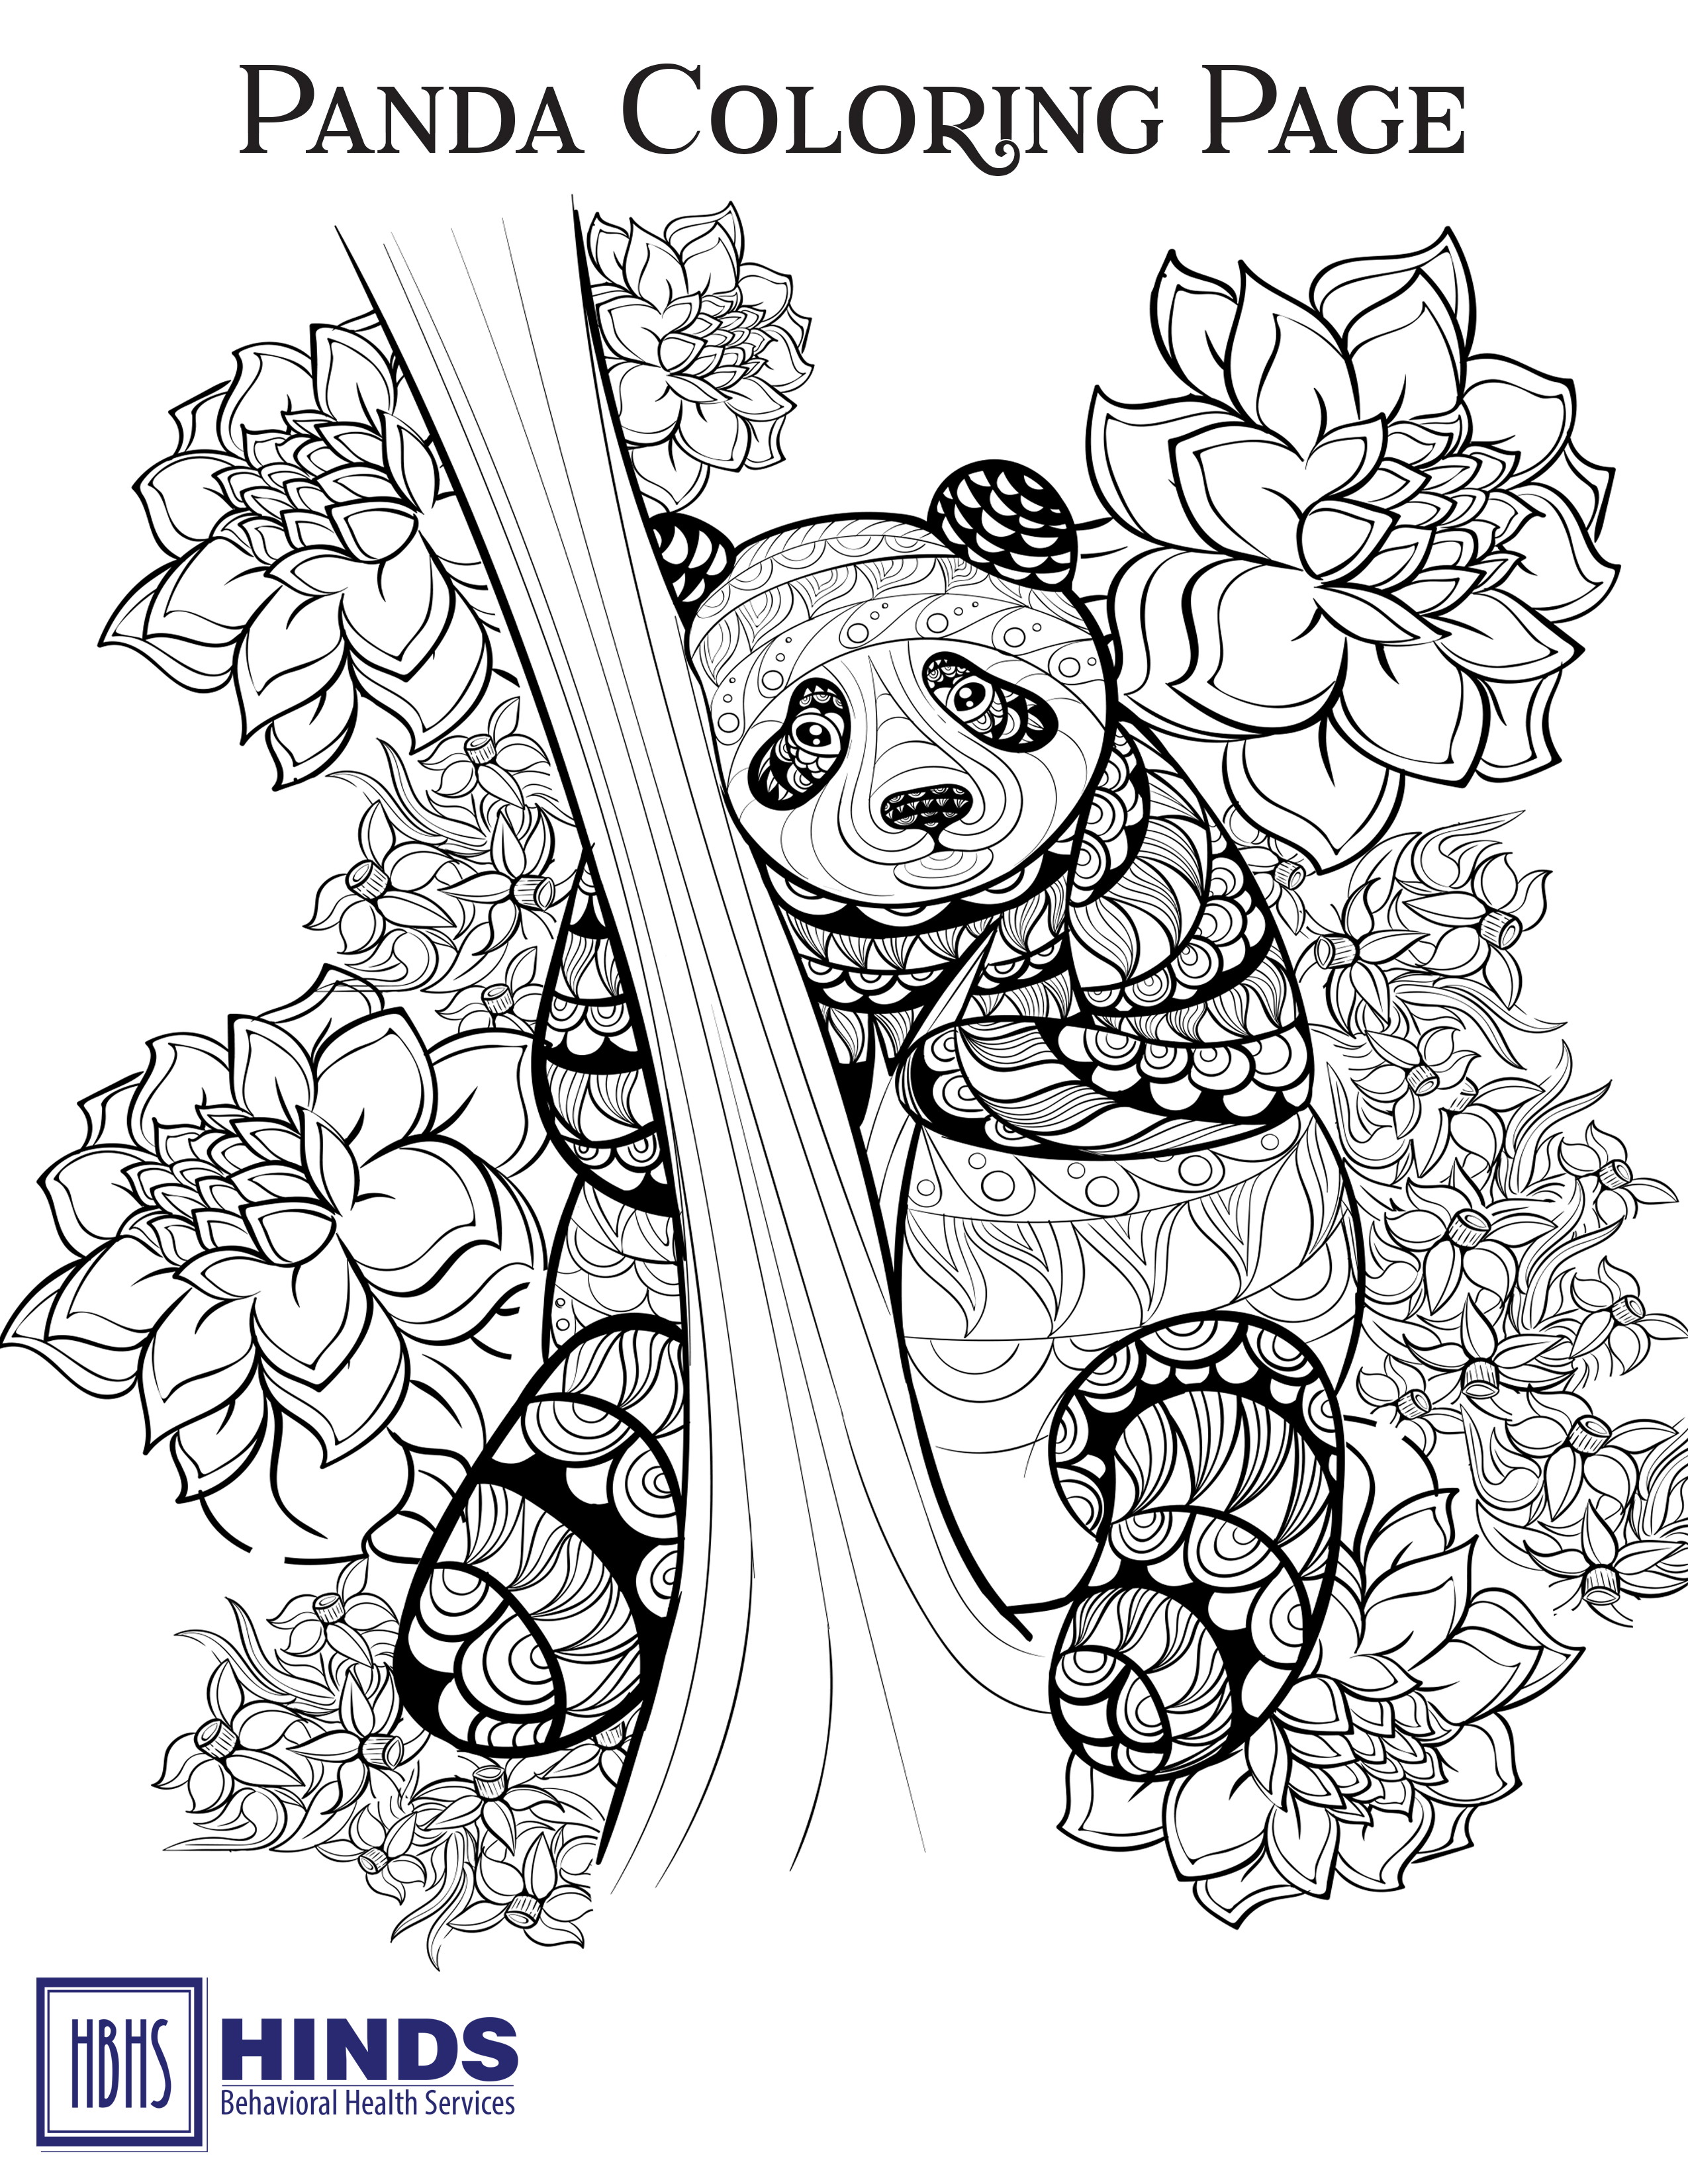 Panda Coloring Page Hinds Behavioral Health Services Region 9